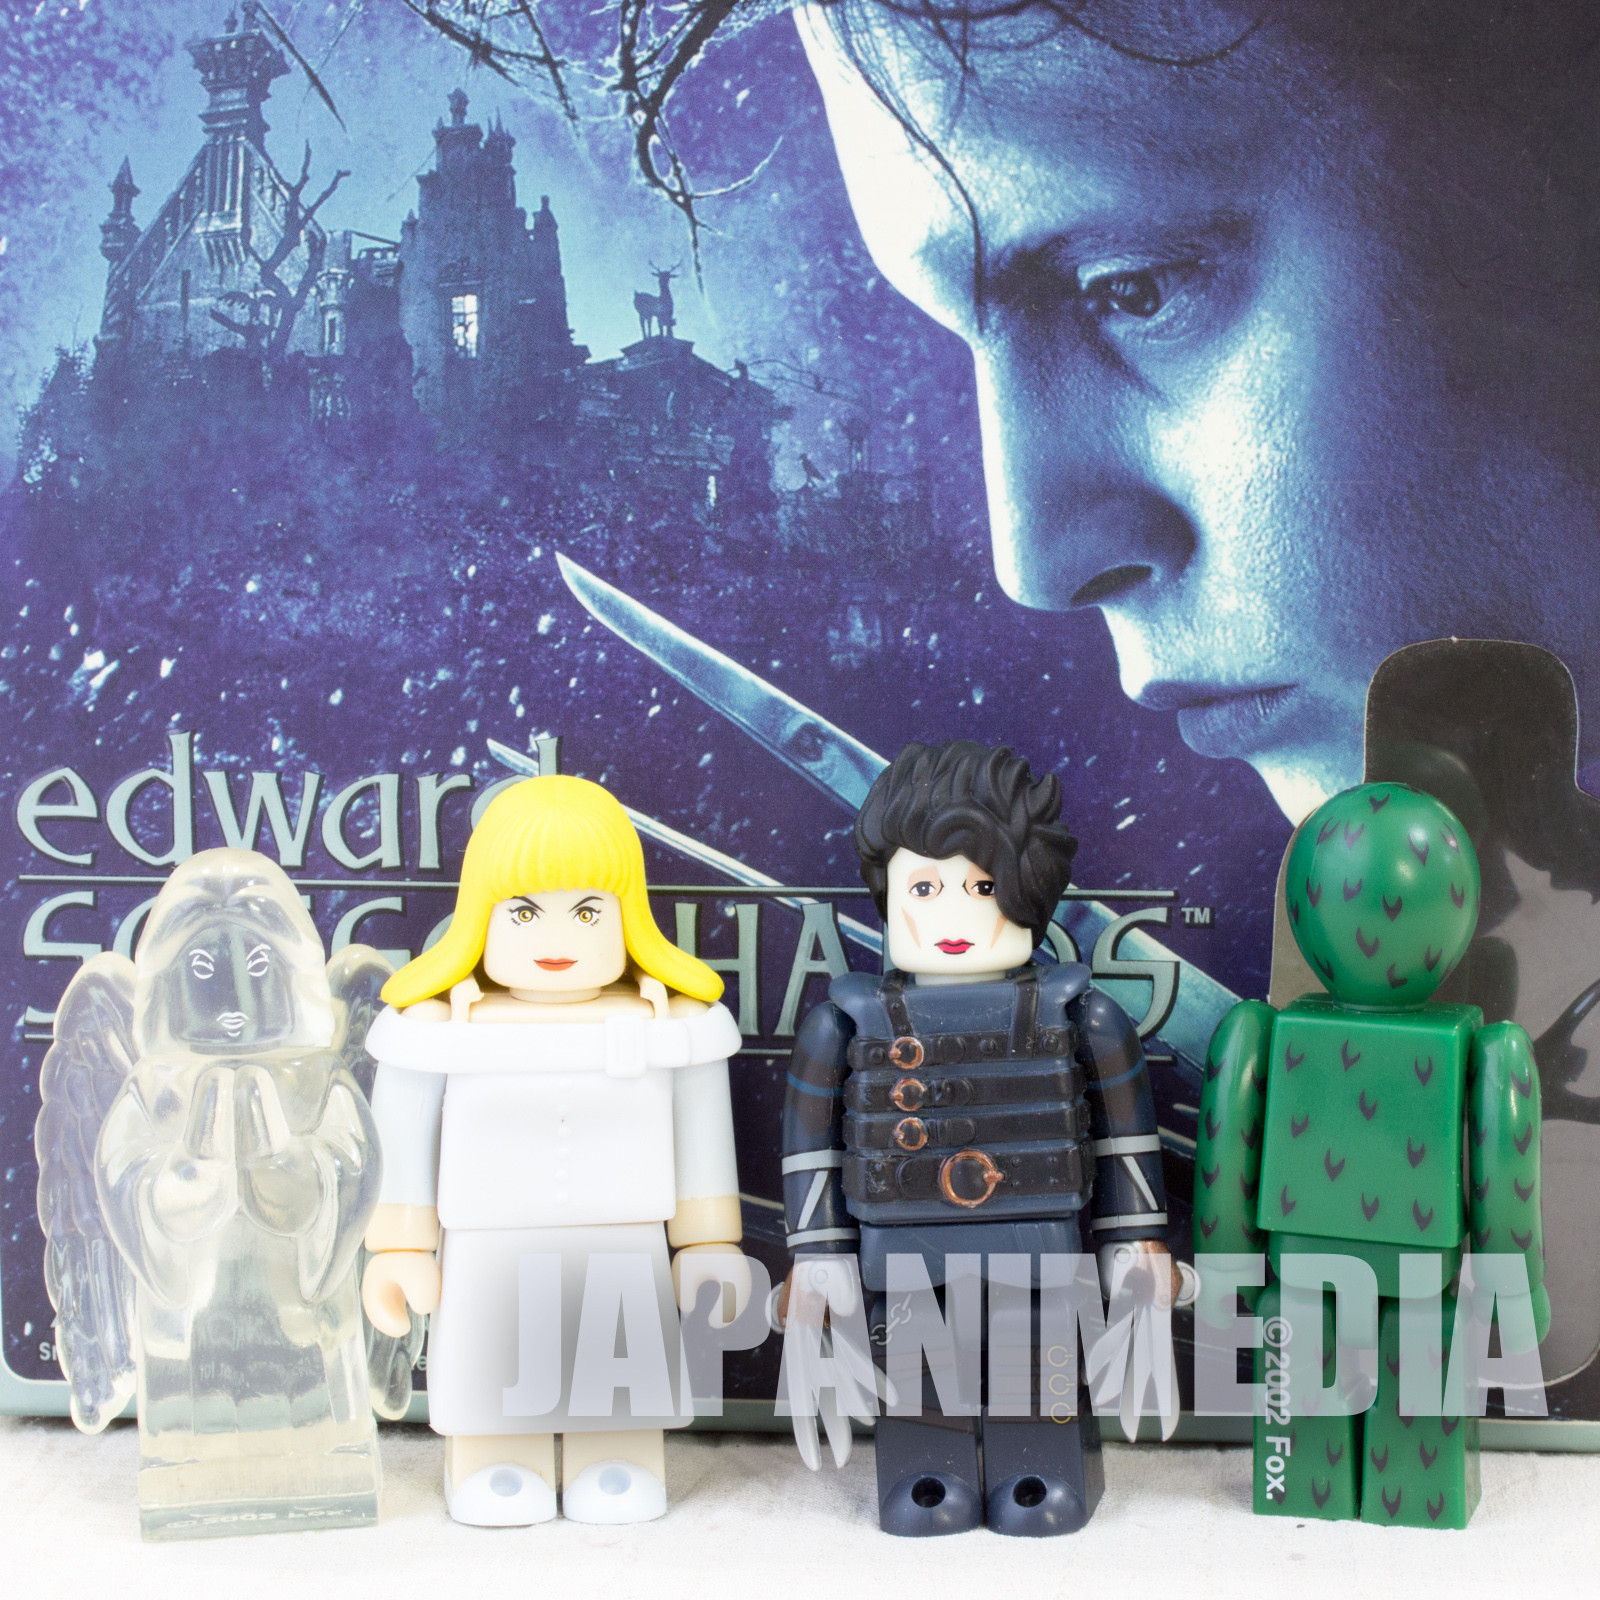 Edward Scissorhands Kim Kubrick figure 4 set Medicom Toy JAPAN Johnny Depp